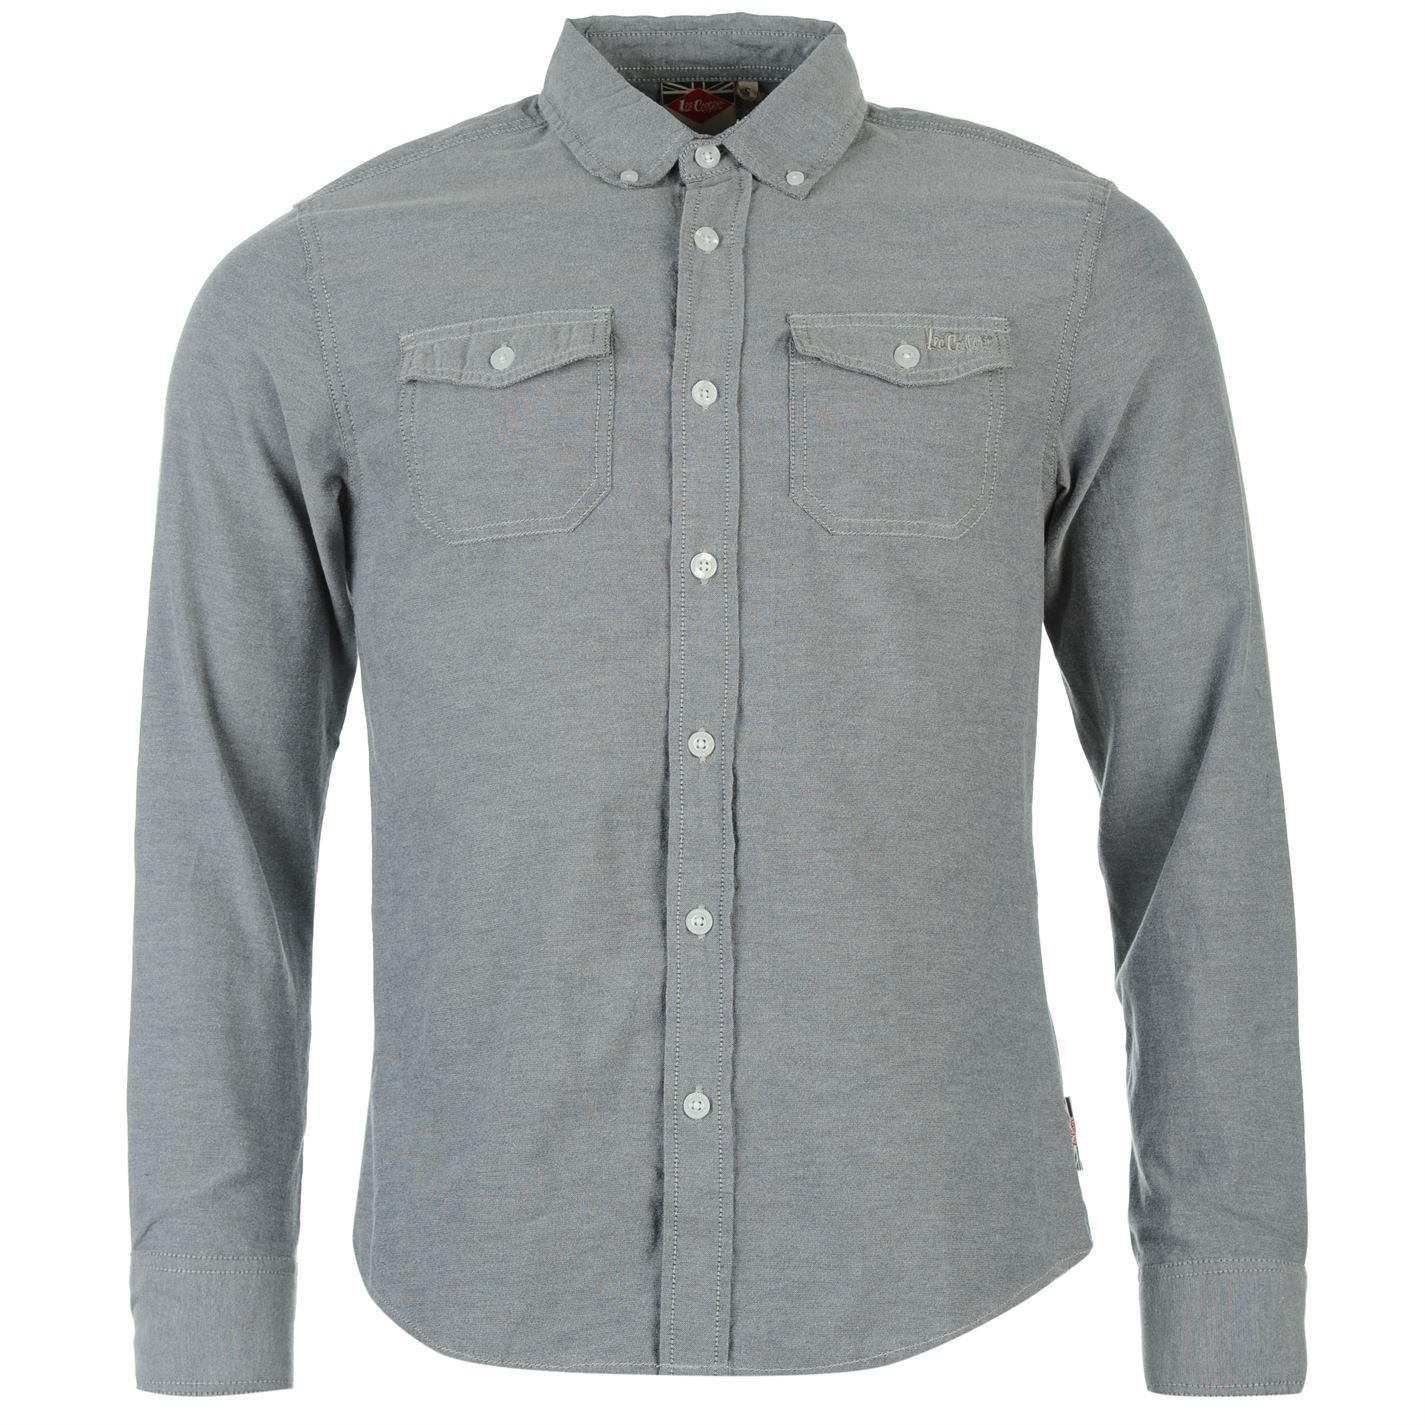 An Oxford Shirt is usually considered a type of dress shirt, but the Oxford shirt is different from a regular dress shirt in two ways: They usually have a button down-style collar which eliminates that problem of collars flopping around and/or laying flat and disappearing underneath a jacket's collar.